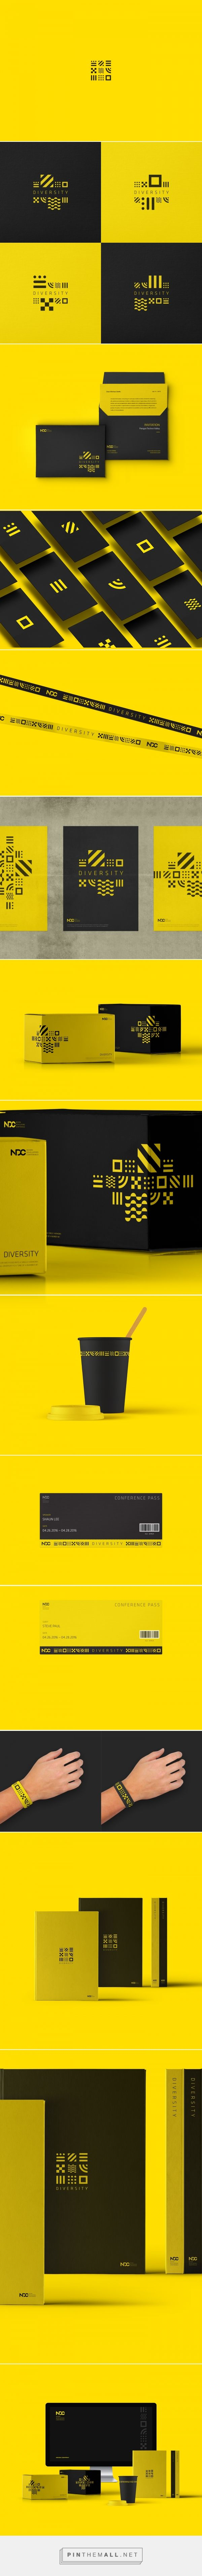 Nexon Developers Conference Branding by Shaun Lee | Fivestar Branding Agency – Design and Branding Agency & Curated Inspiration Gallery